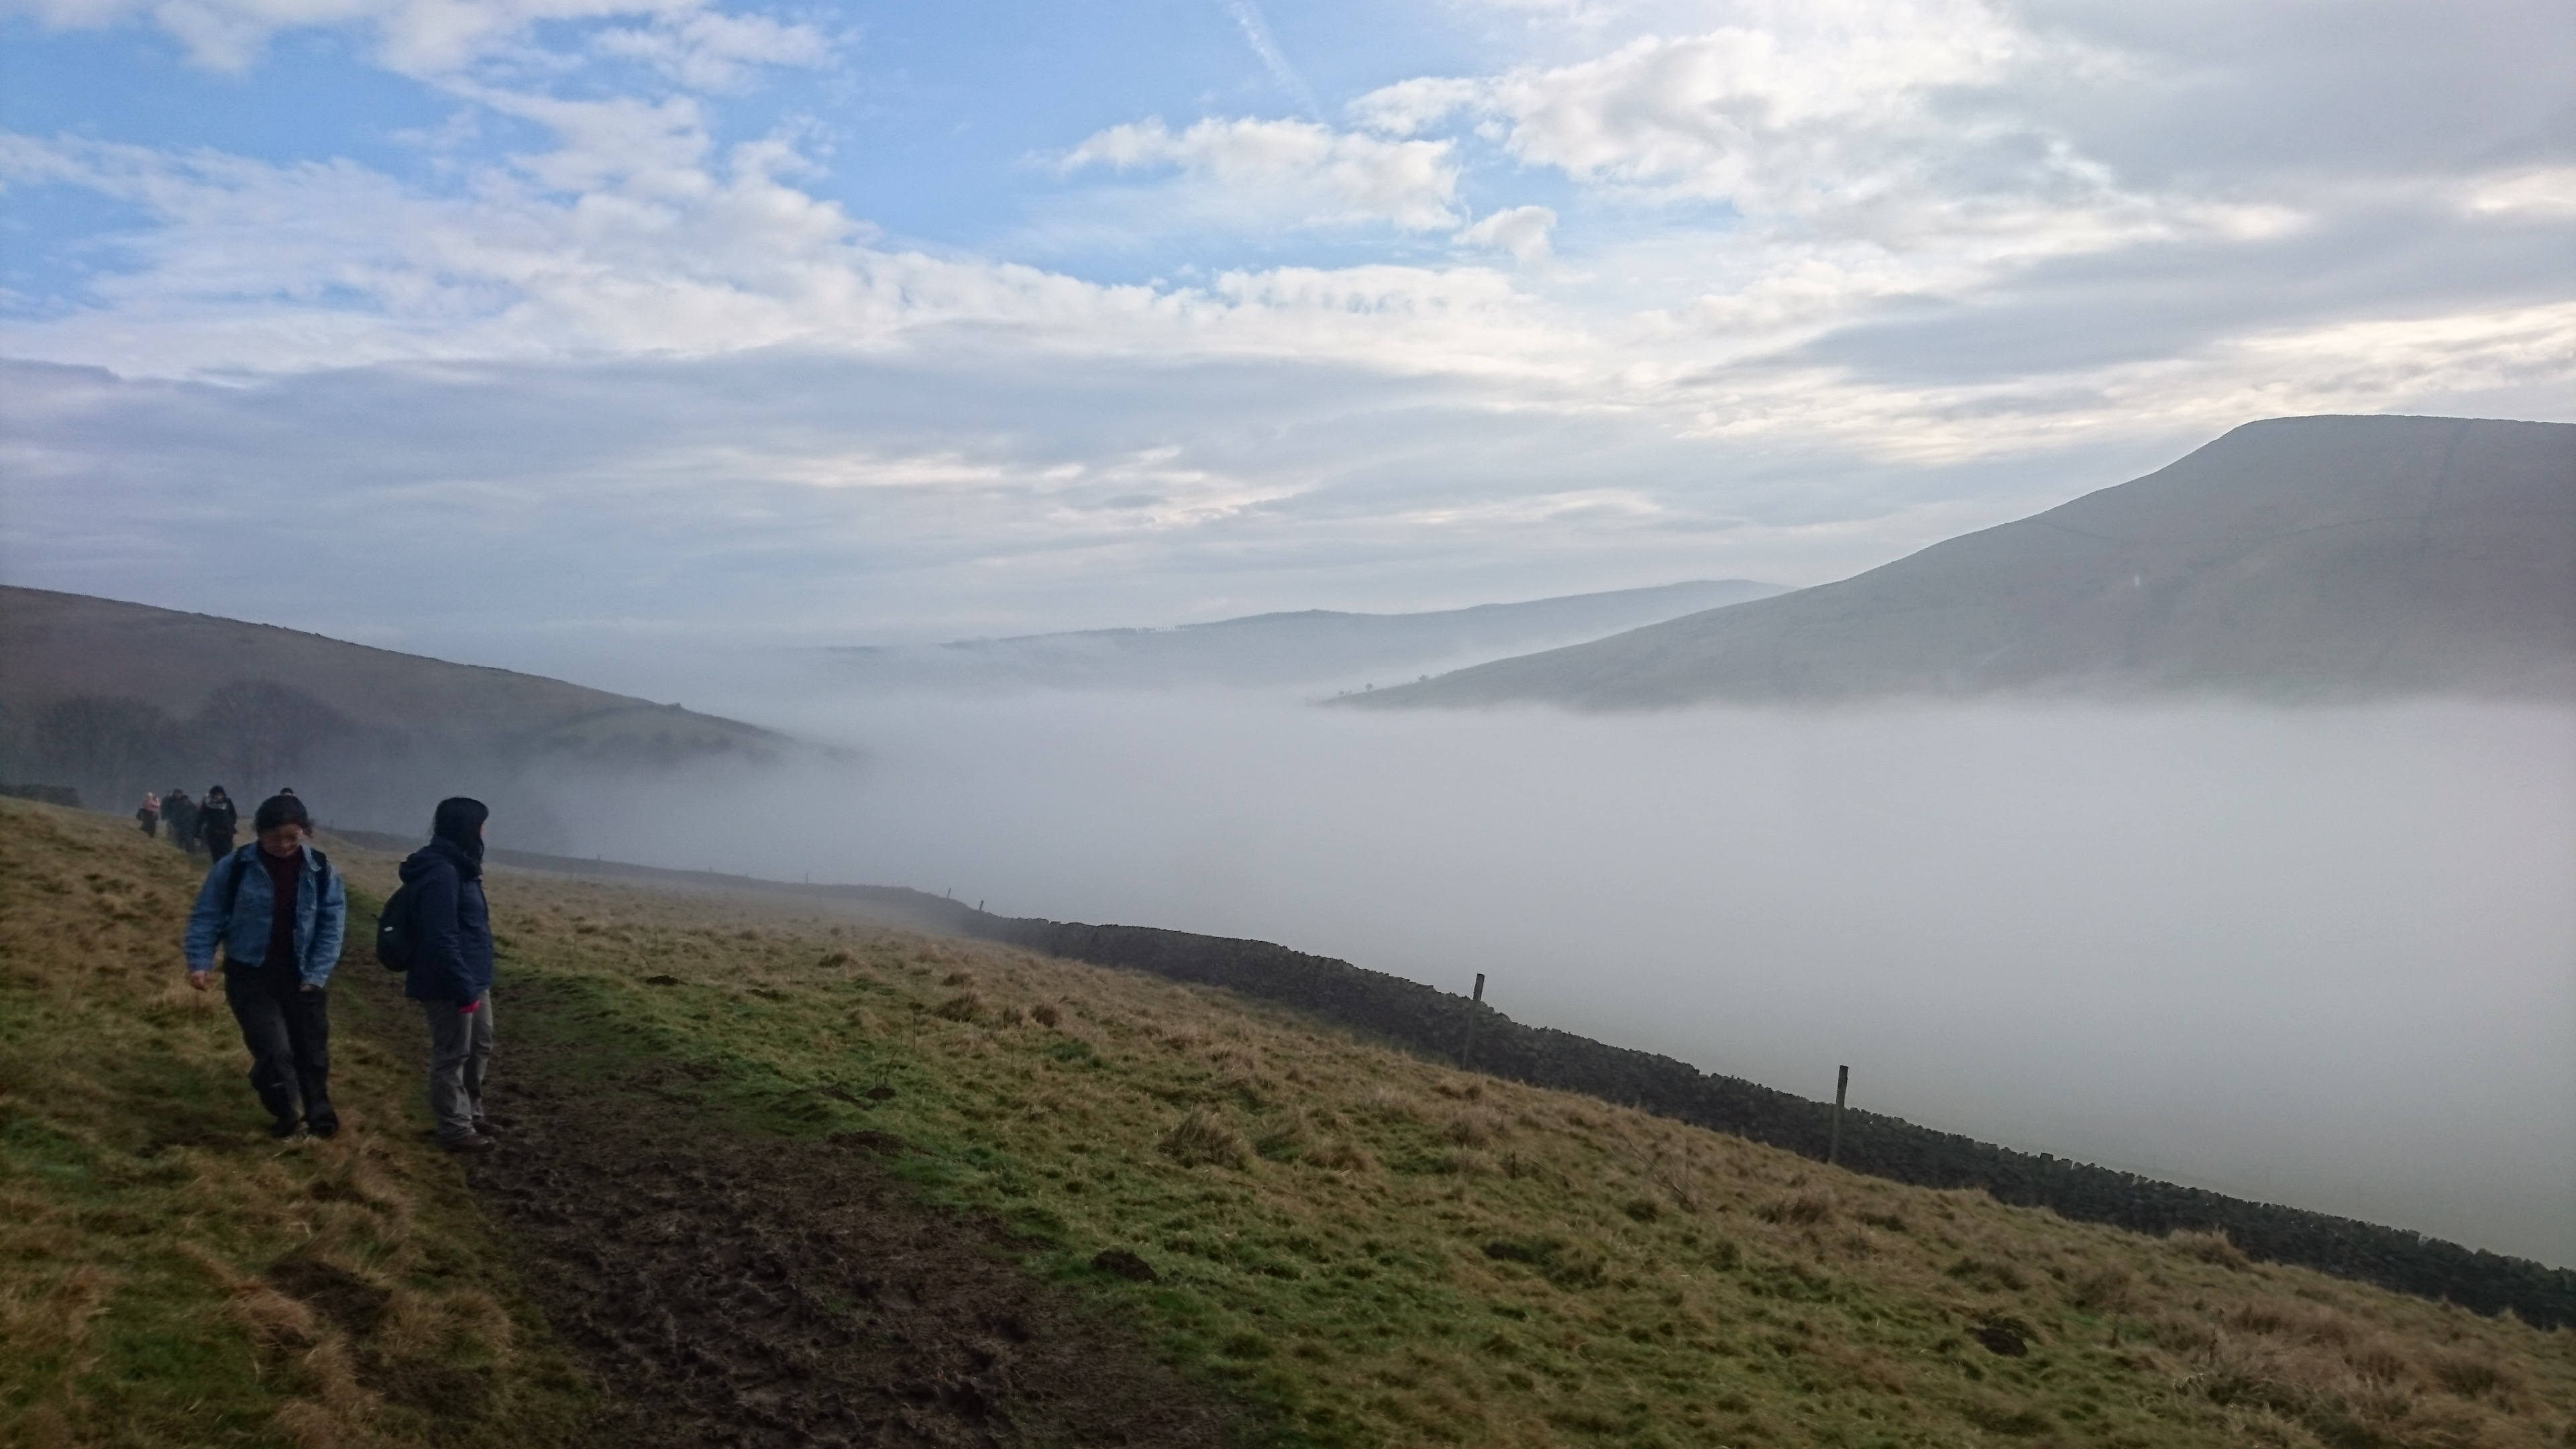 Cloud inversion in the peak district